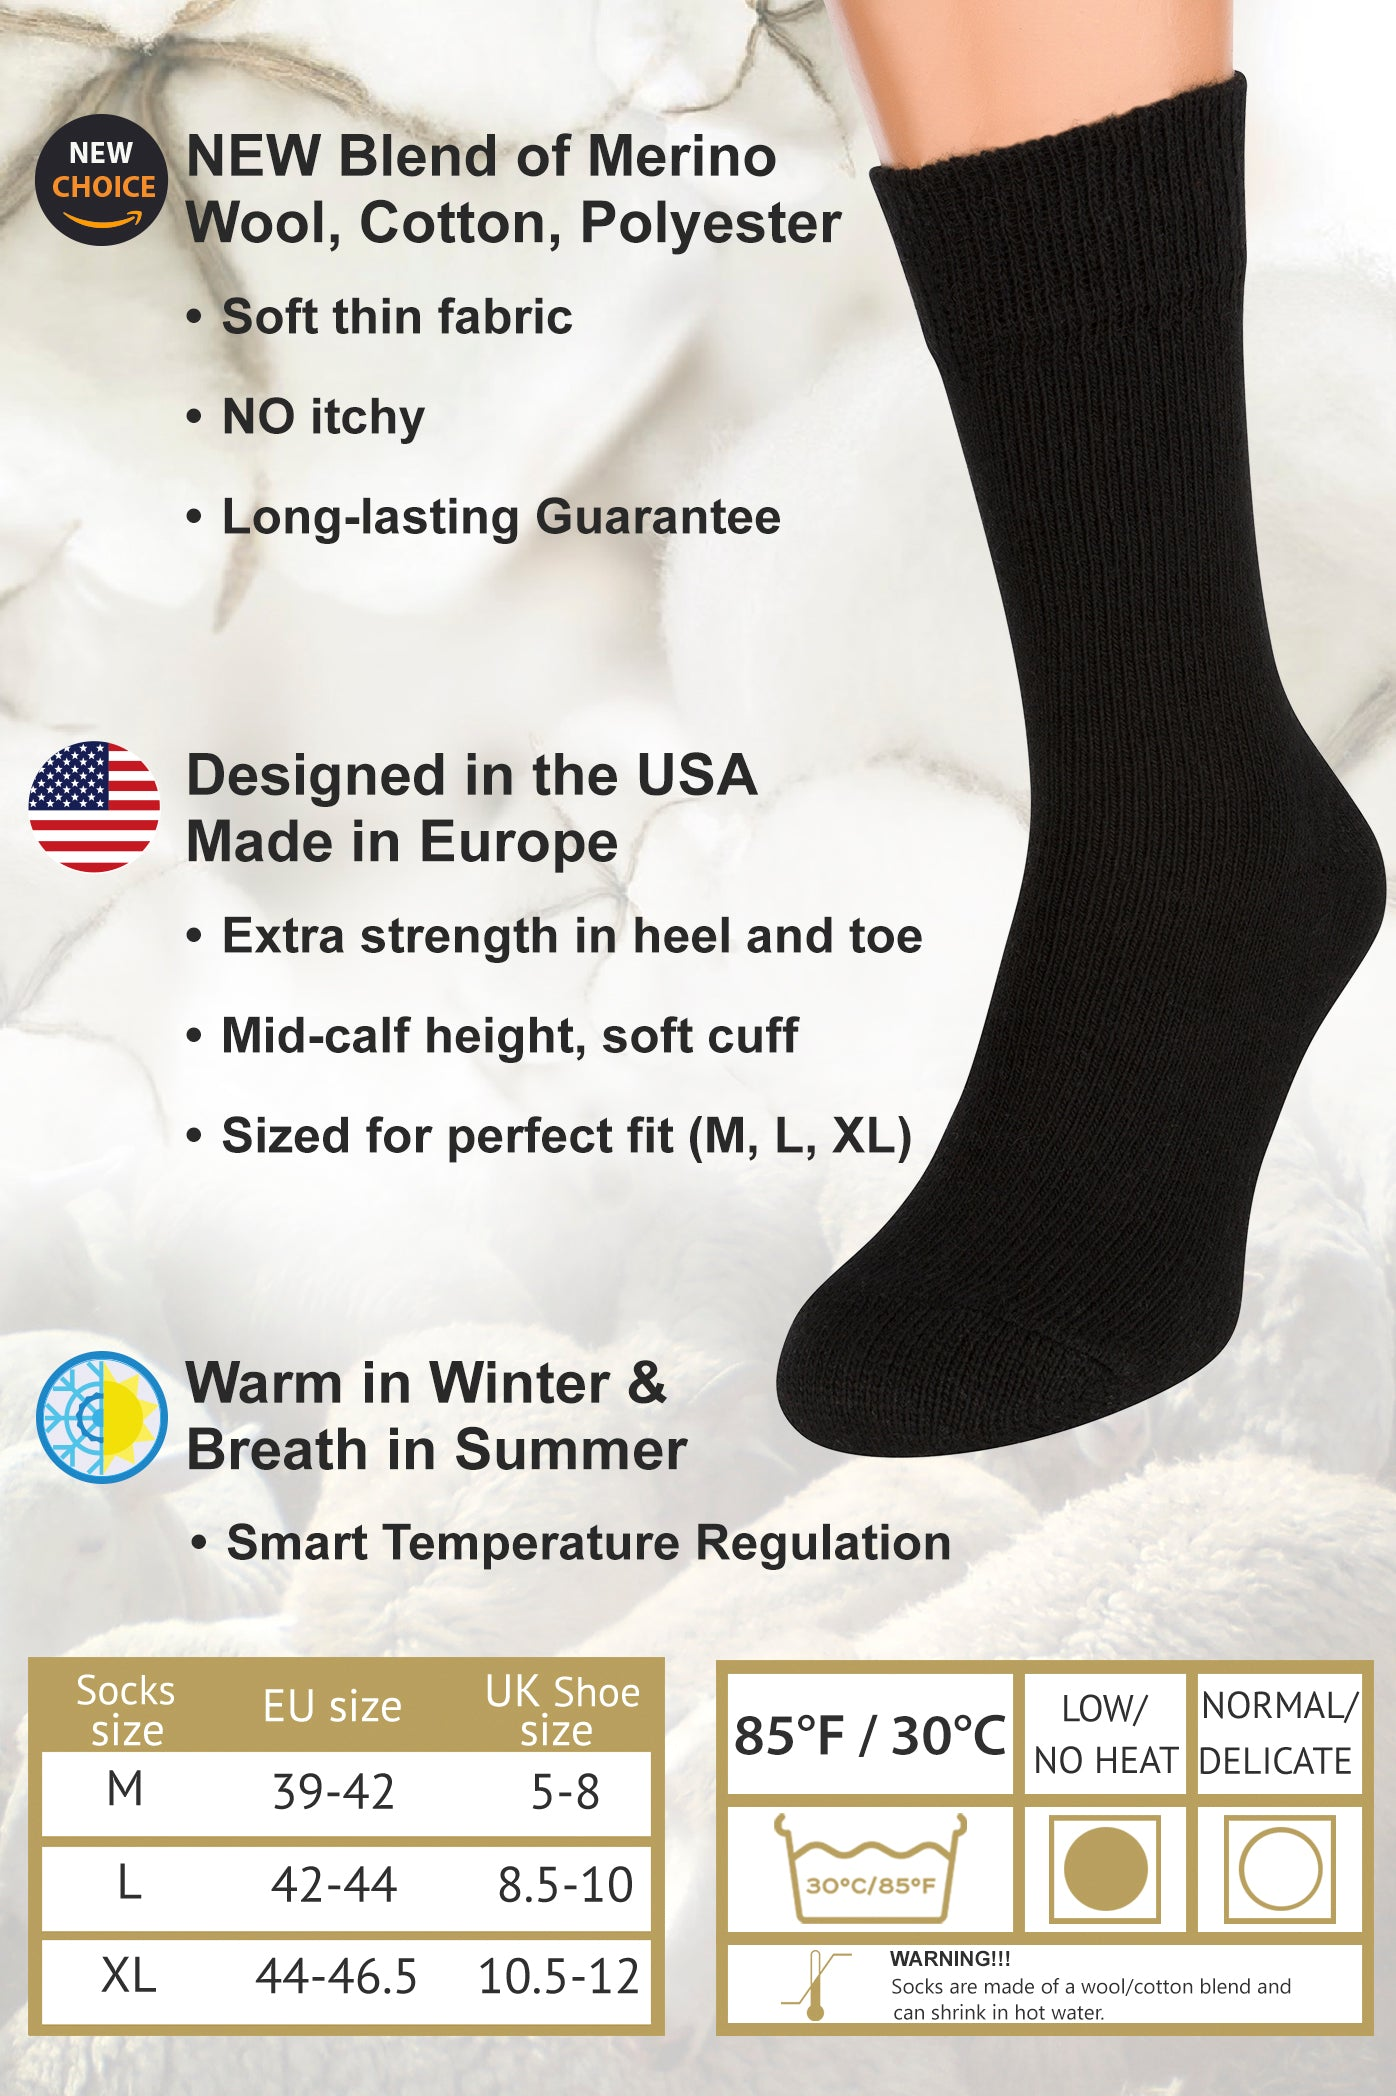 Air Wool Socks, Merino Wool Organic Cotton Thermal Heated Yarn Dress Sox, 2 pair (Black)